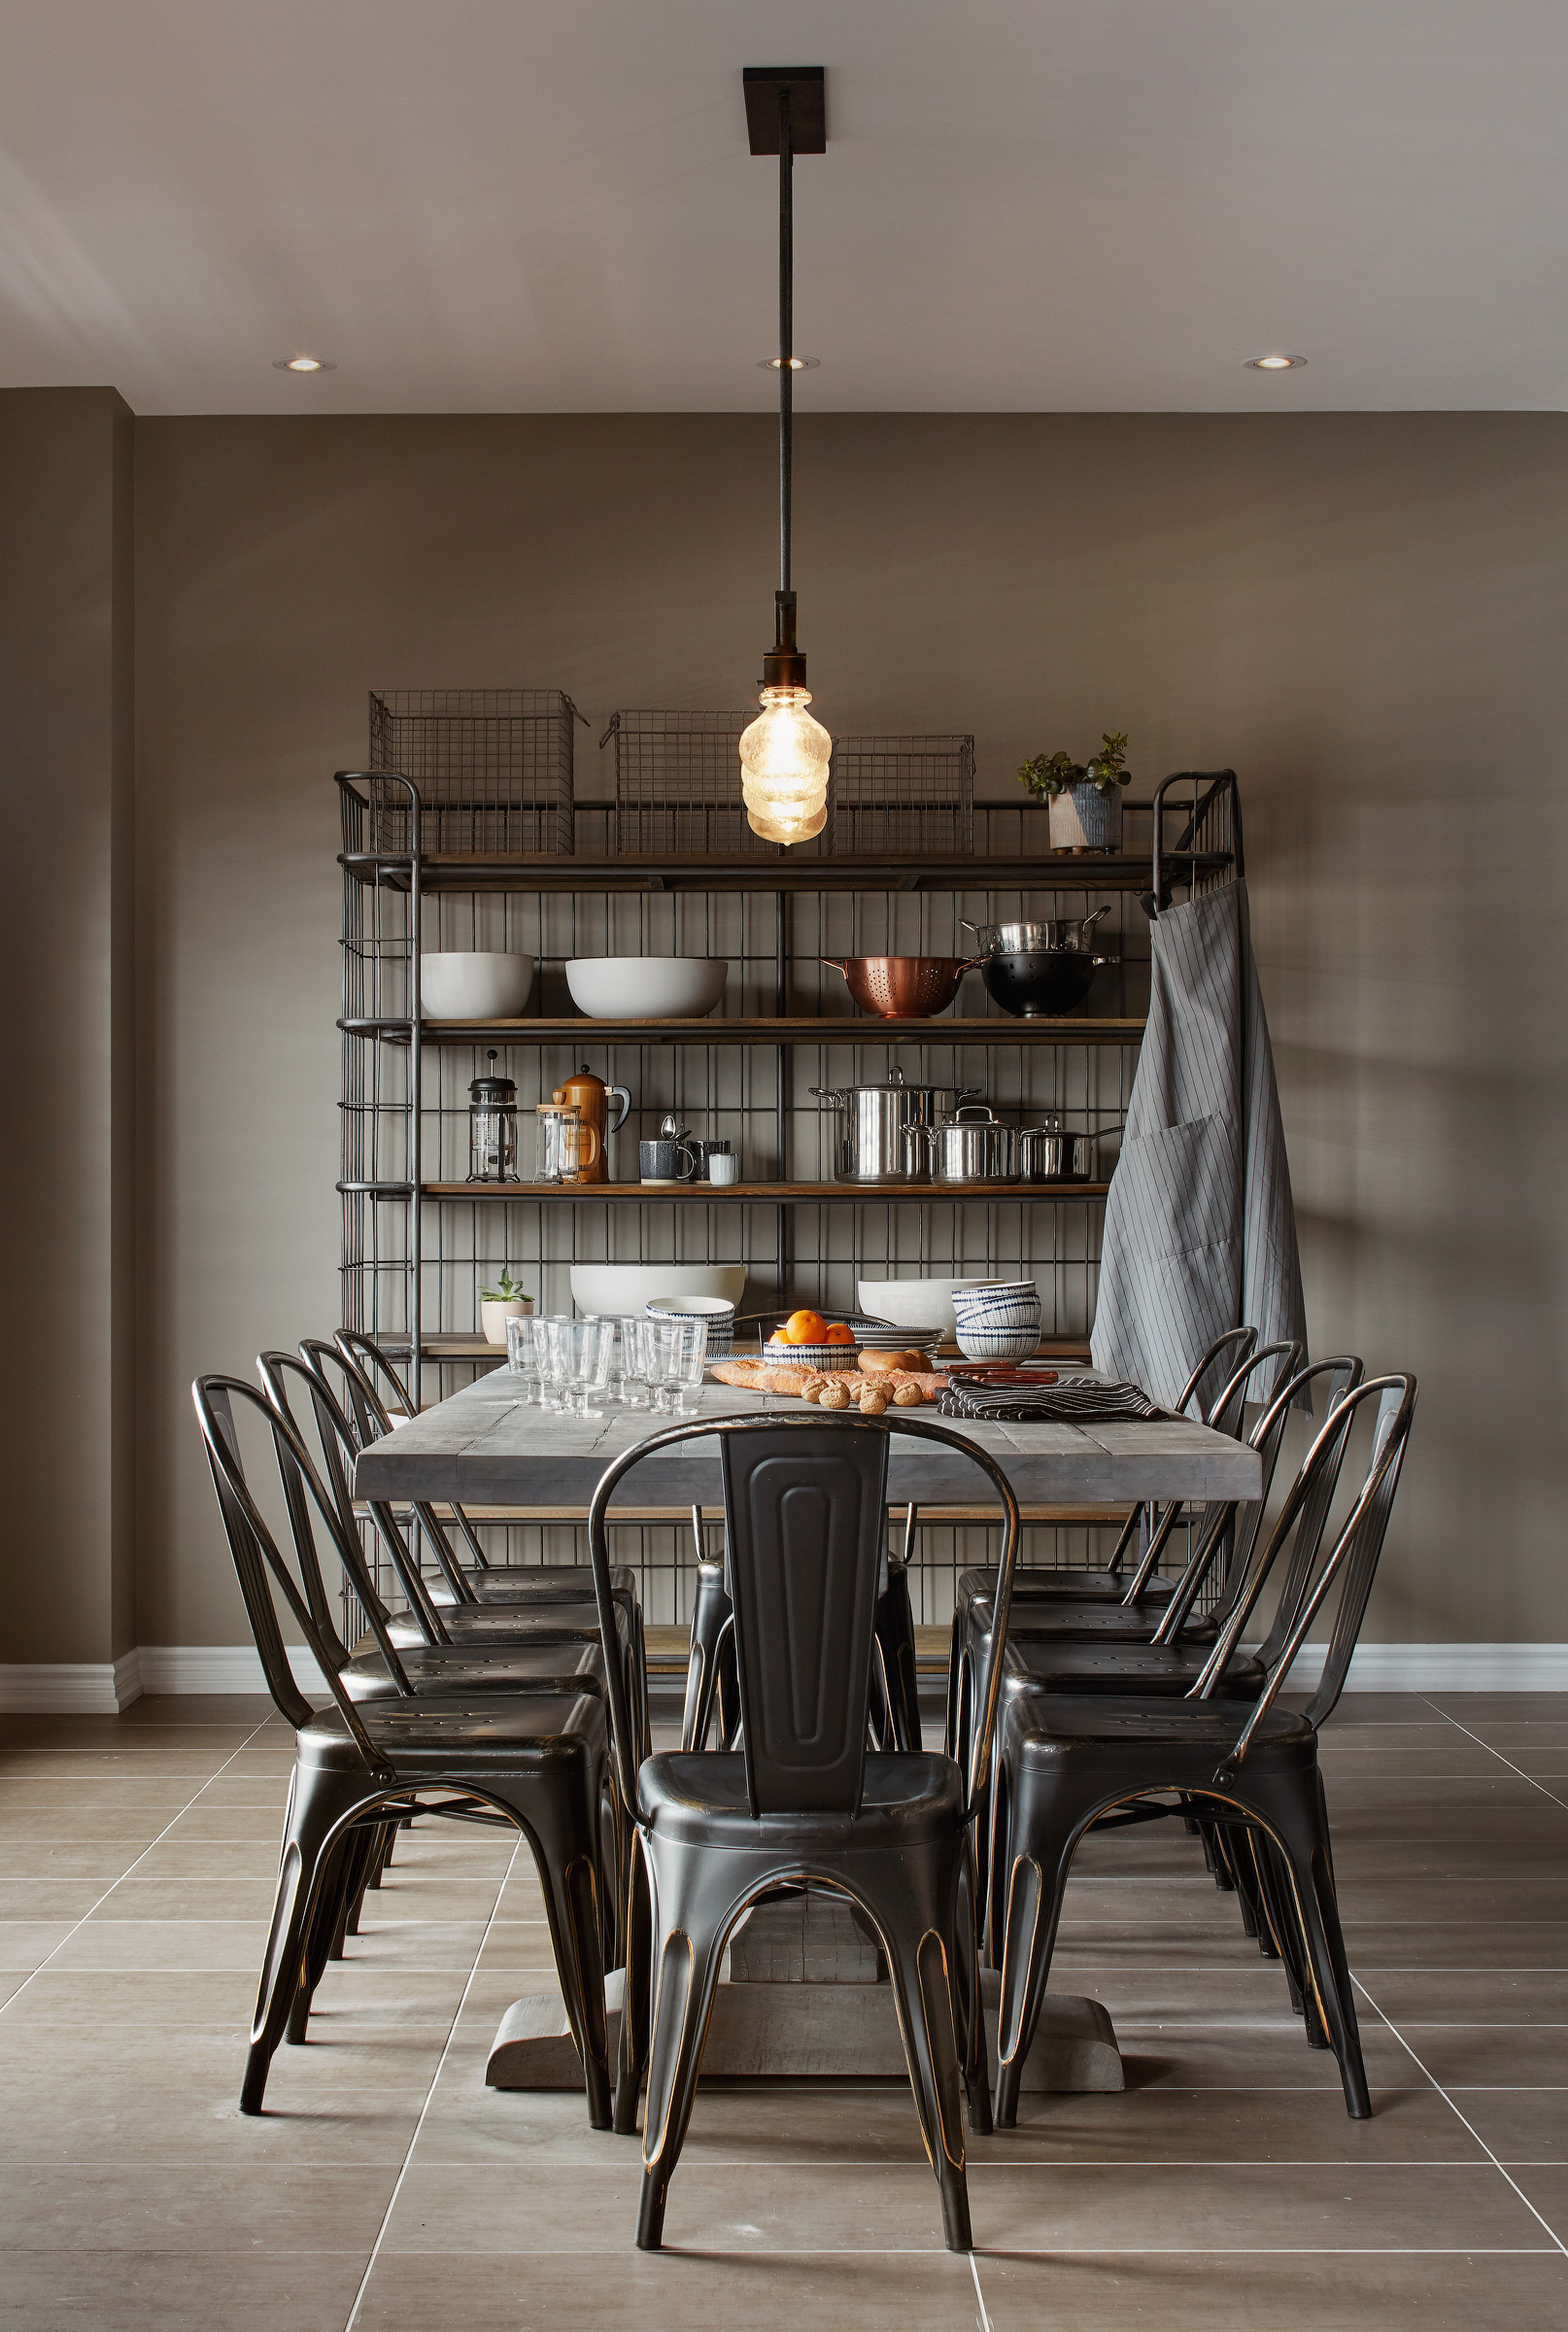 Industrial Ranch kitchen with large wood table, metal chairs, and industrial lighting